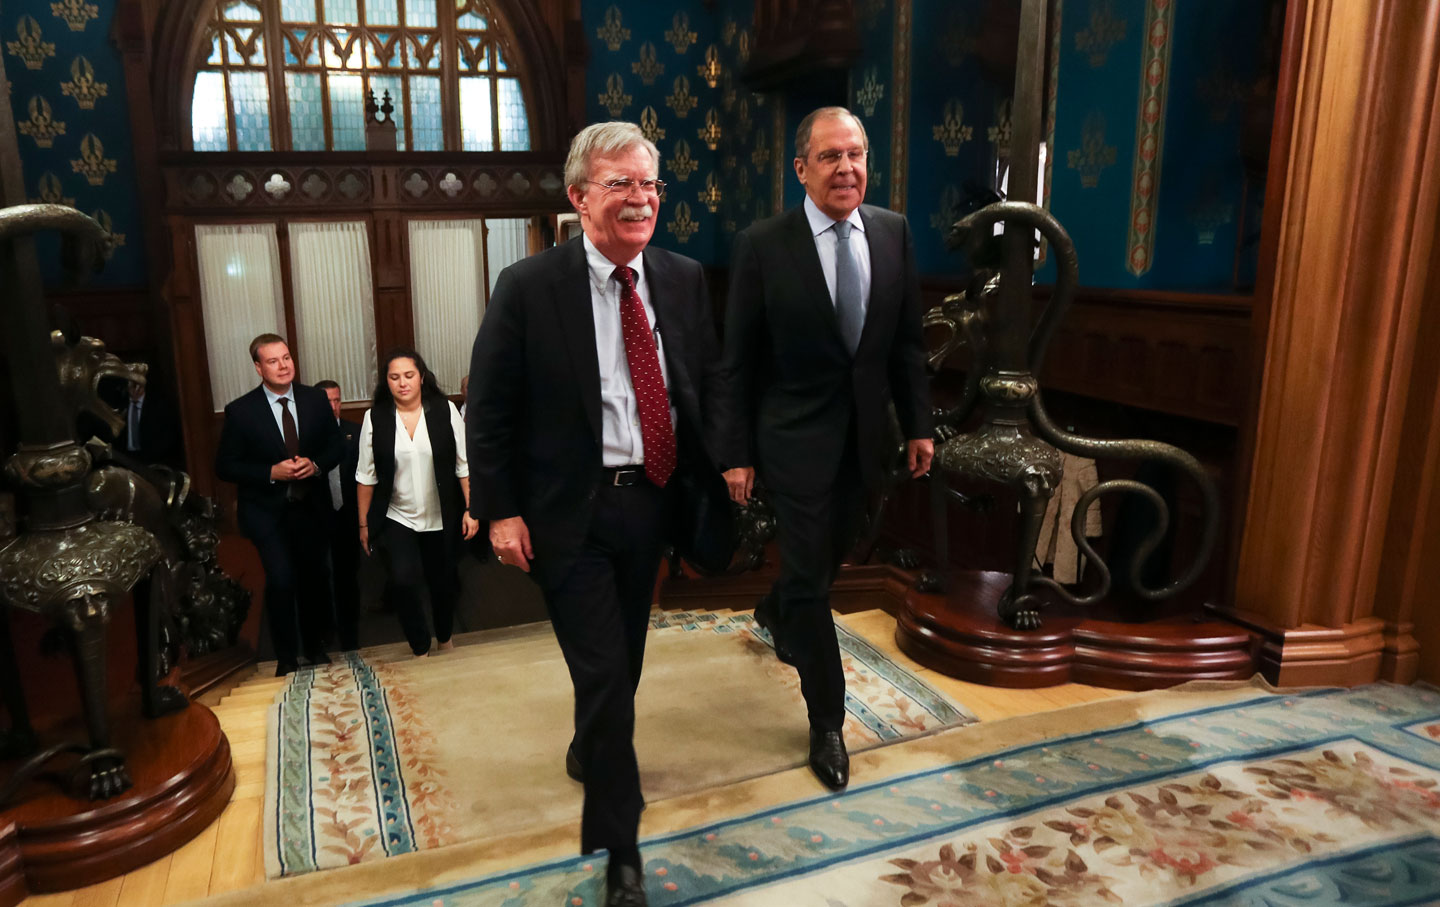 US National Security Adviser John Bolton and Russian Foreign Minister Sergey Lavrov